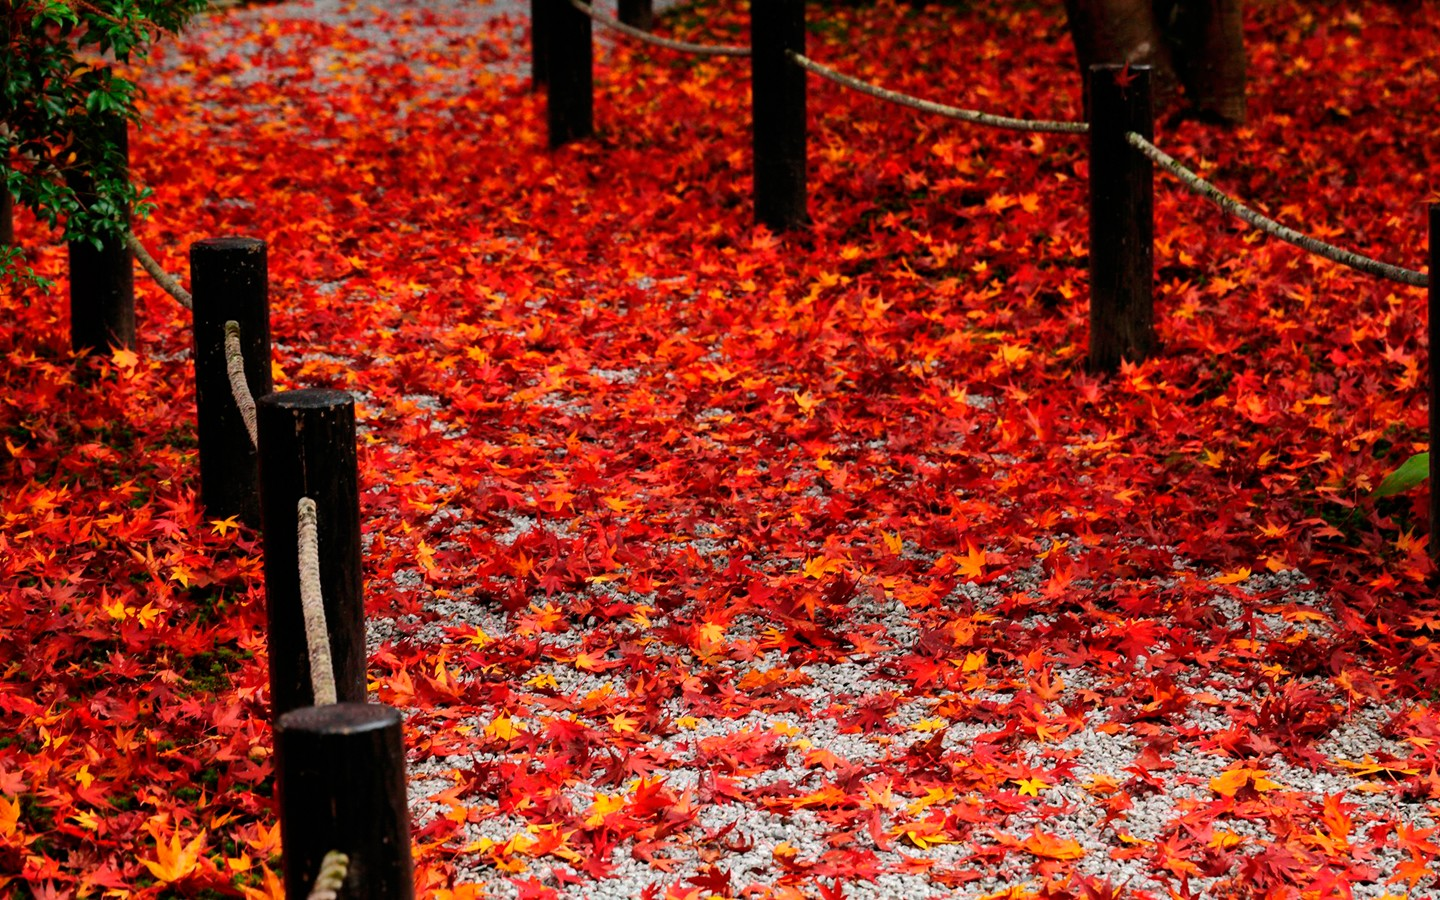 Red fallen leaves of the Road 31564